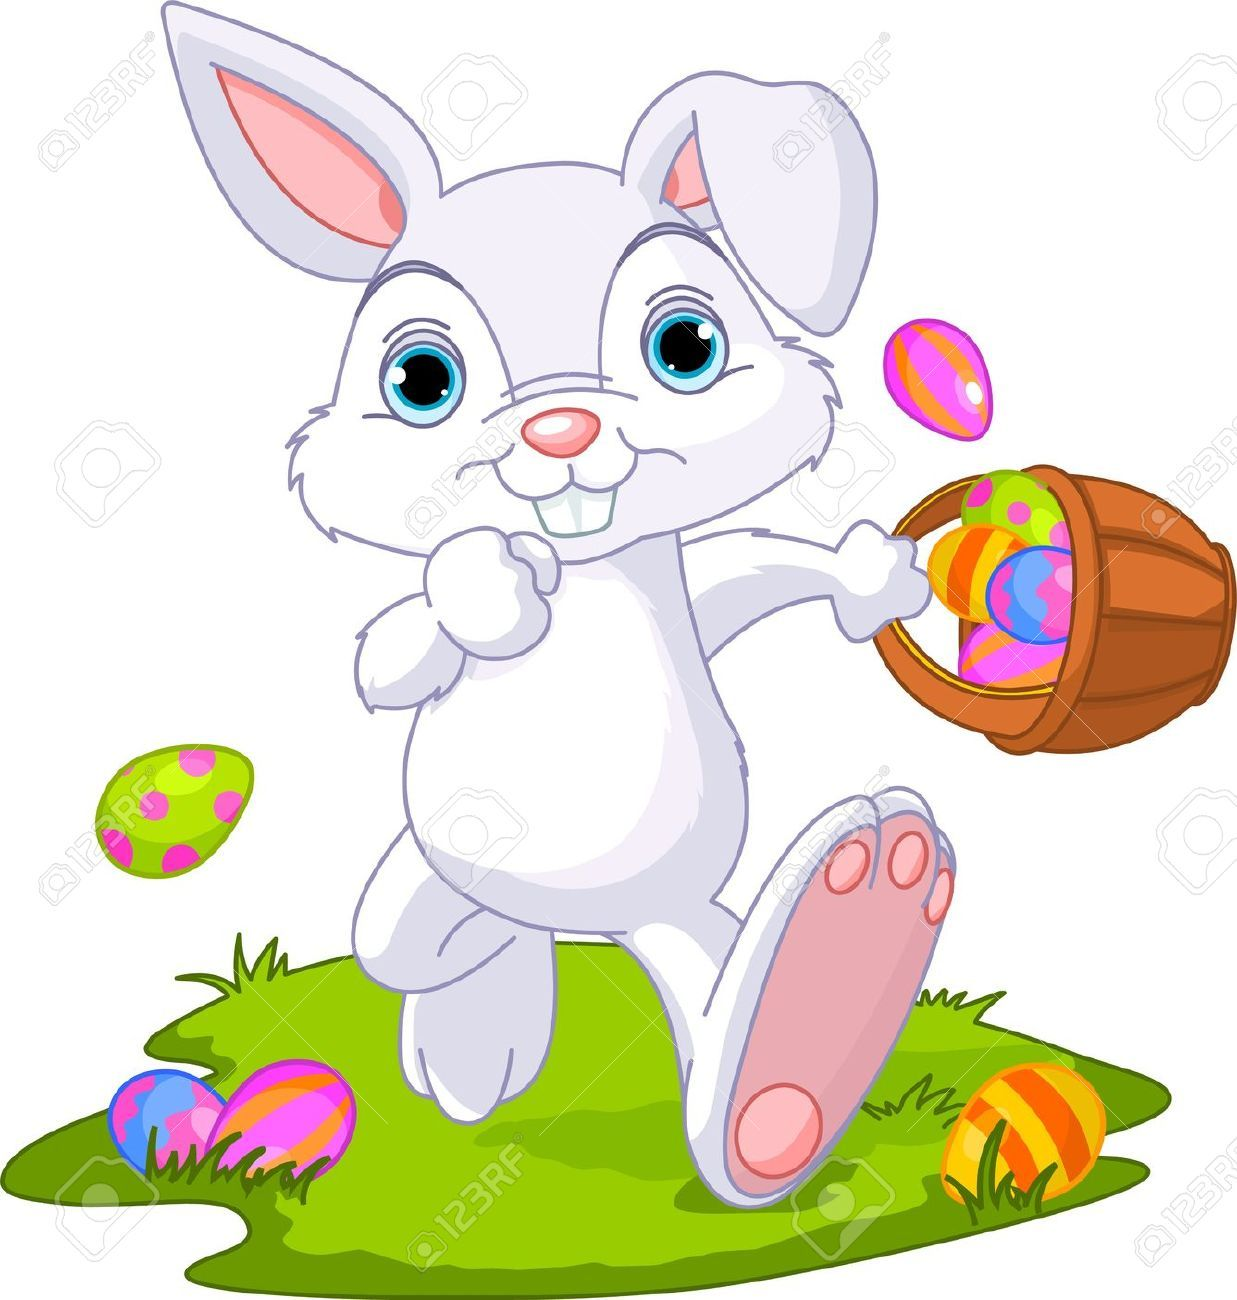 Free easter bunny clipart download clip art royalty free stock Latest Easter Bunny Clipart Free Download   Easter Day   Easter ... clip art royalty free stock